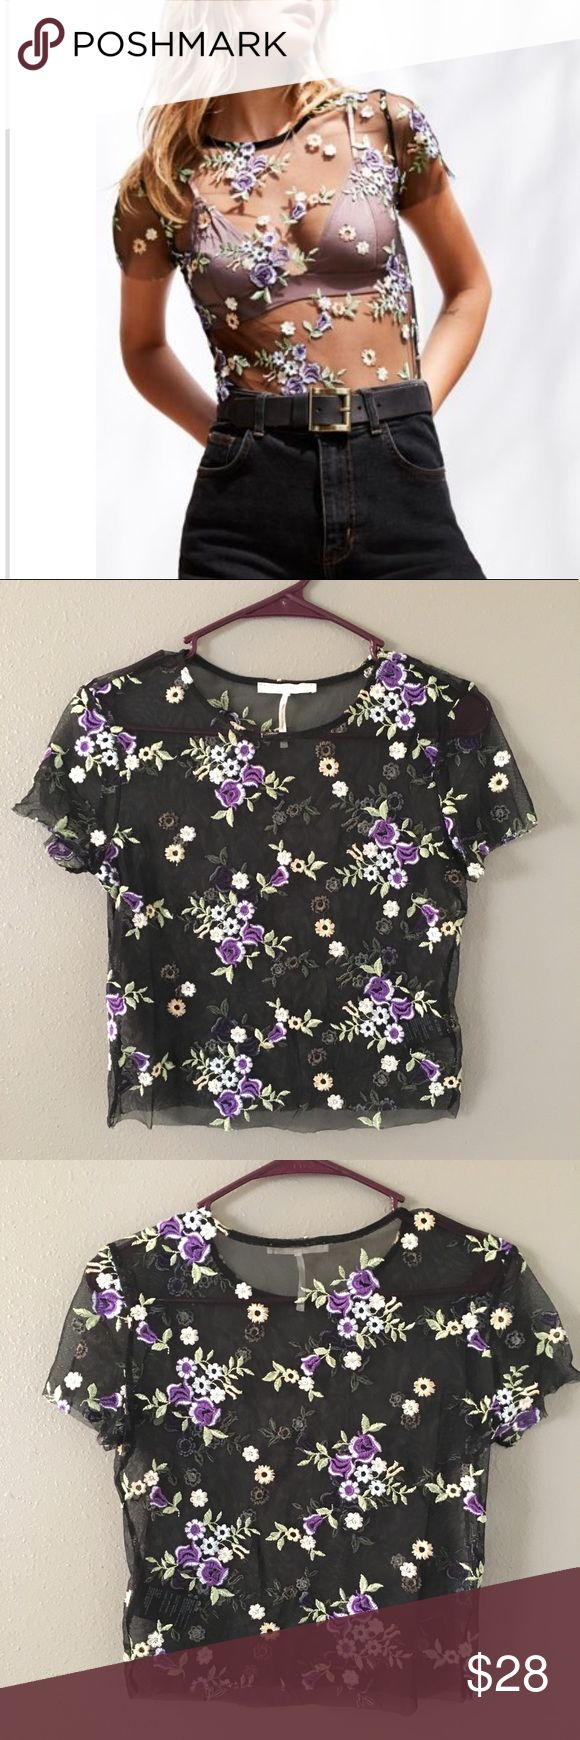 Urban Outfitters sheer top - NWOT Urban Outfitters sheer top with flowers sewn on. Never worn. Ordered online from UO. Edges are left raw and when the flowers are near the edges they are more subject to fraying and that is how it arrived as shown in picture 6.   Perfect for festivals: Coachella, EDC, EDCLV, Vegas, spring fashion, summer fashion, festival season Urban Outfitters Tops